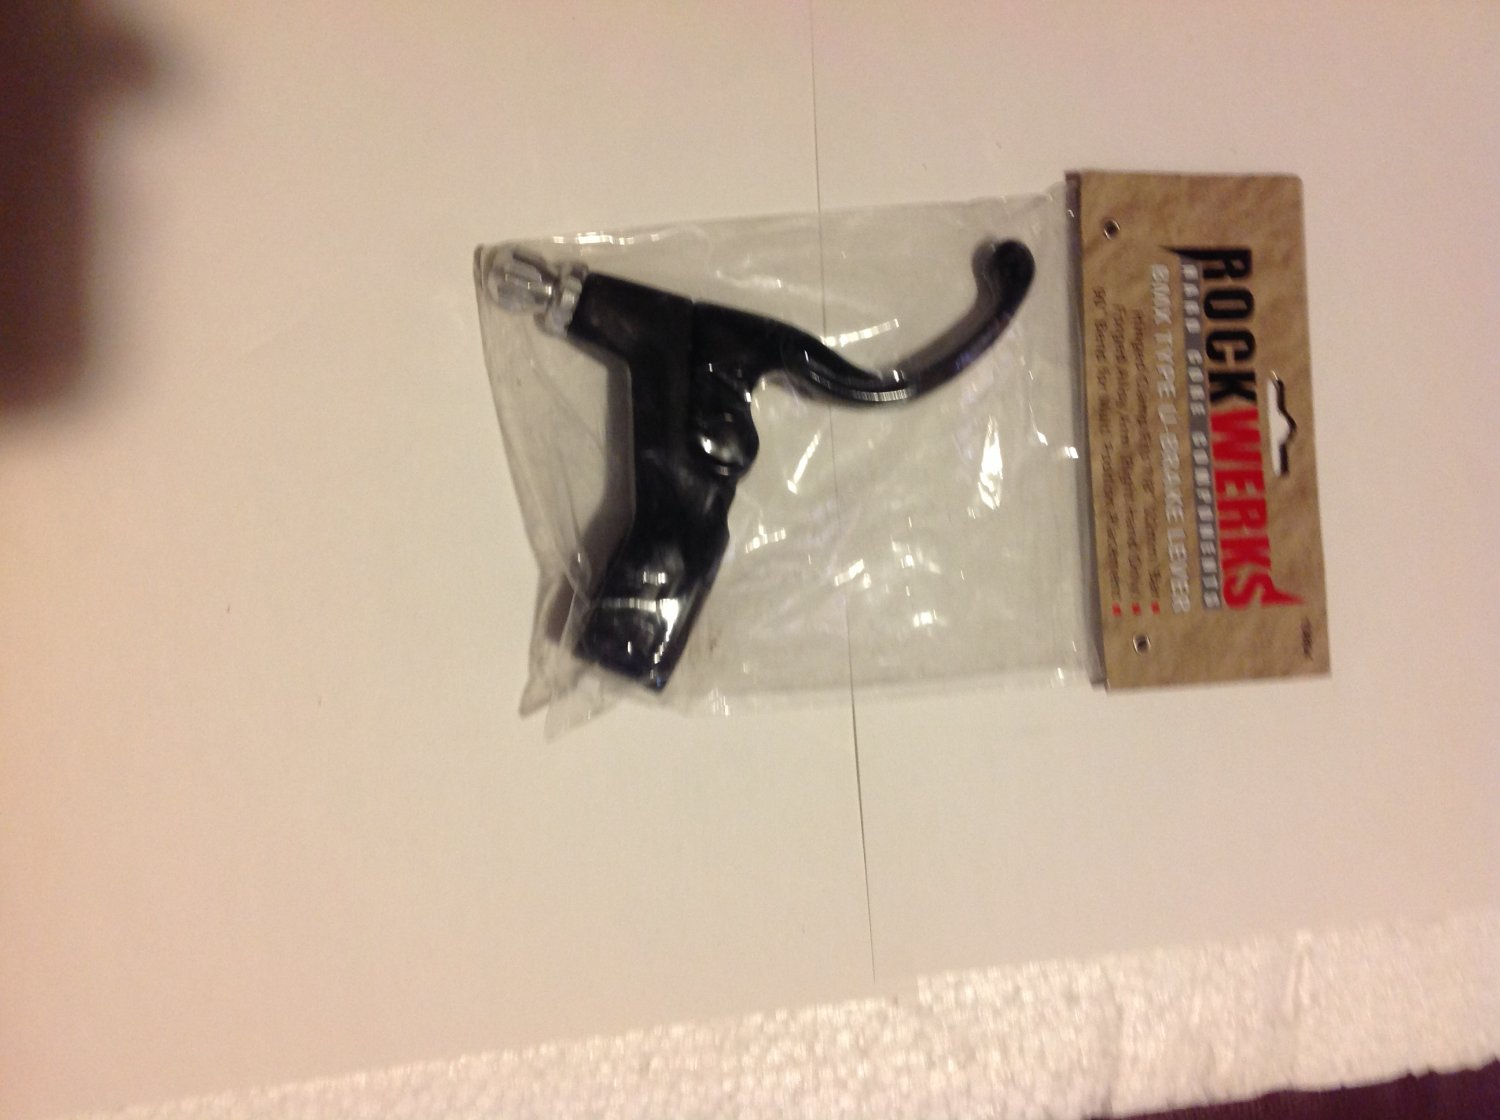 Right BRAKE LEVER for BMX or Freestyle bicycle.  S&H is $3.95 or $1.95